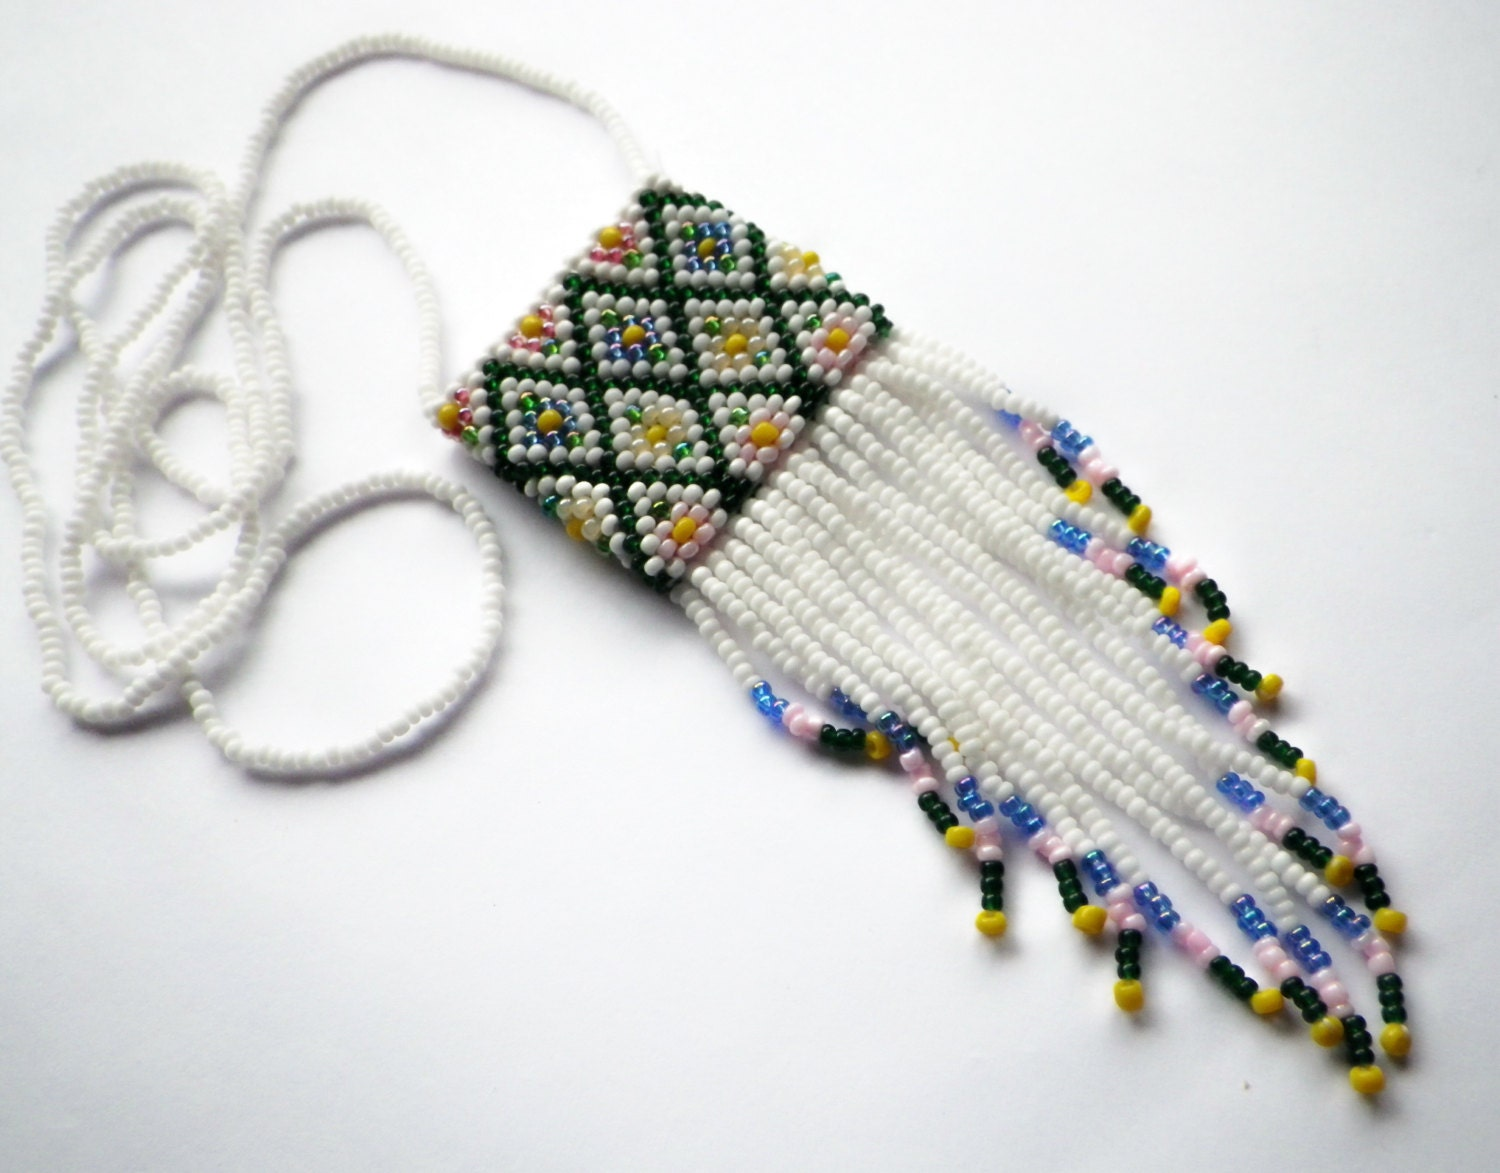 Spring Flowers- Vintage Bead Woven- Amulet Bag- Tapestry Bag- Necklace- Gift for Her - CassieVision